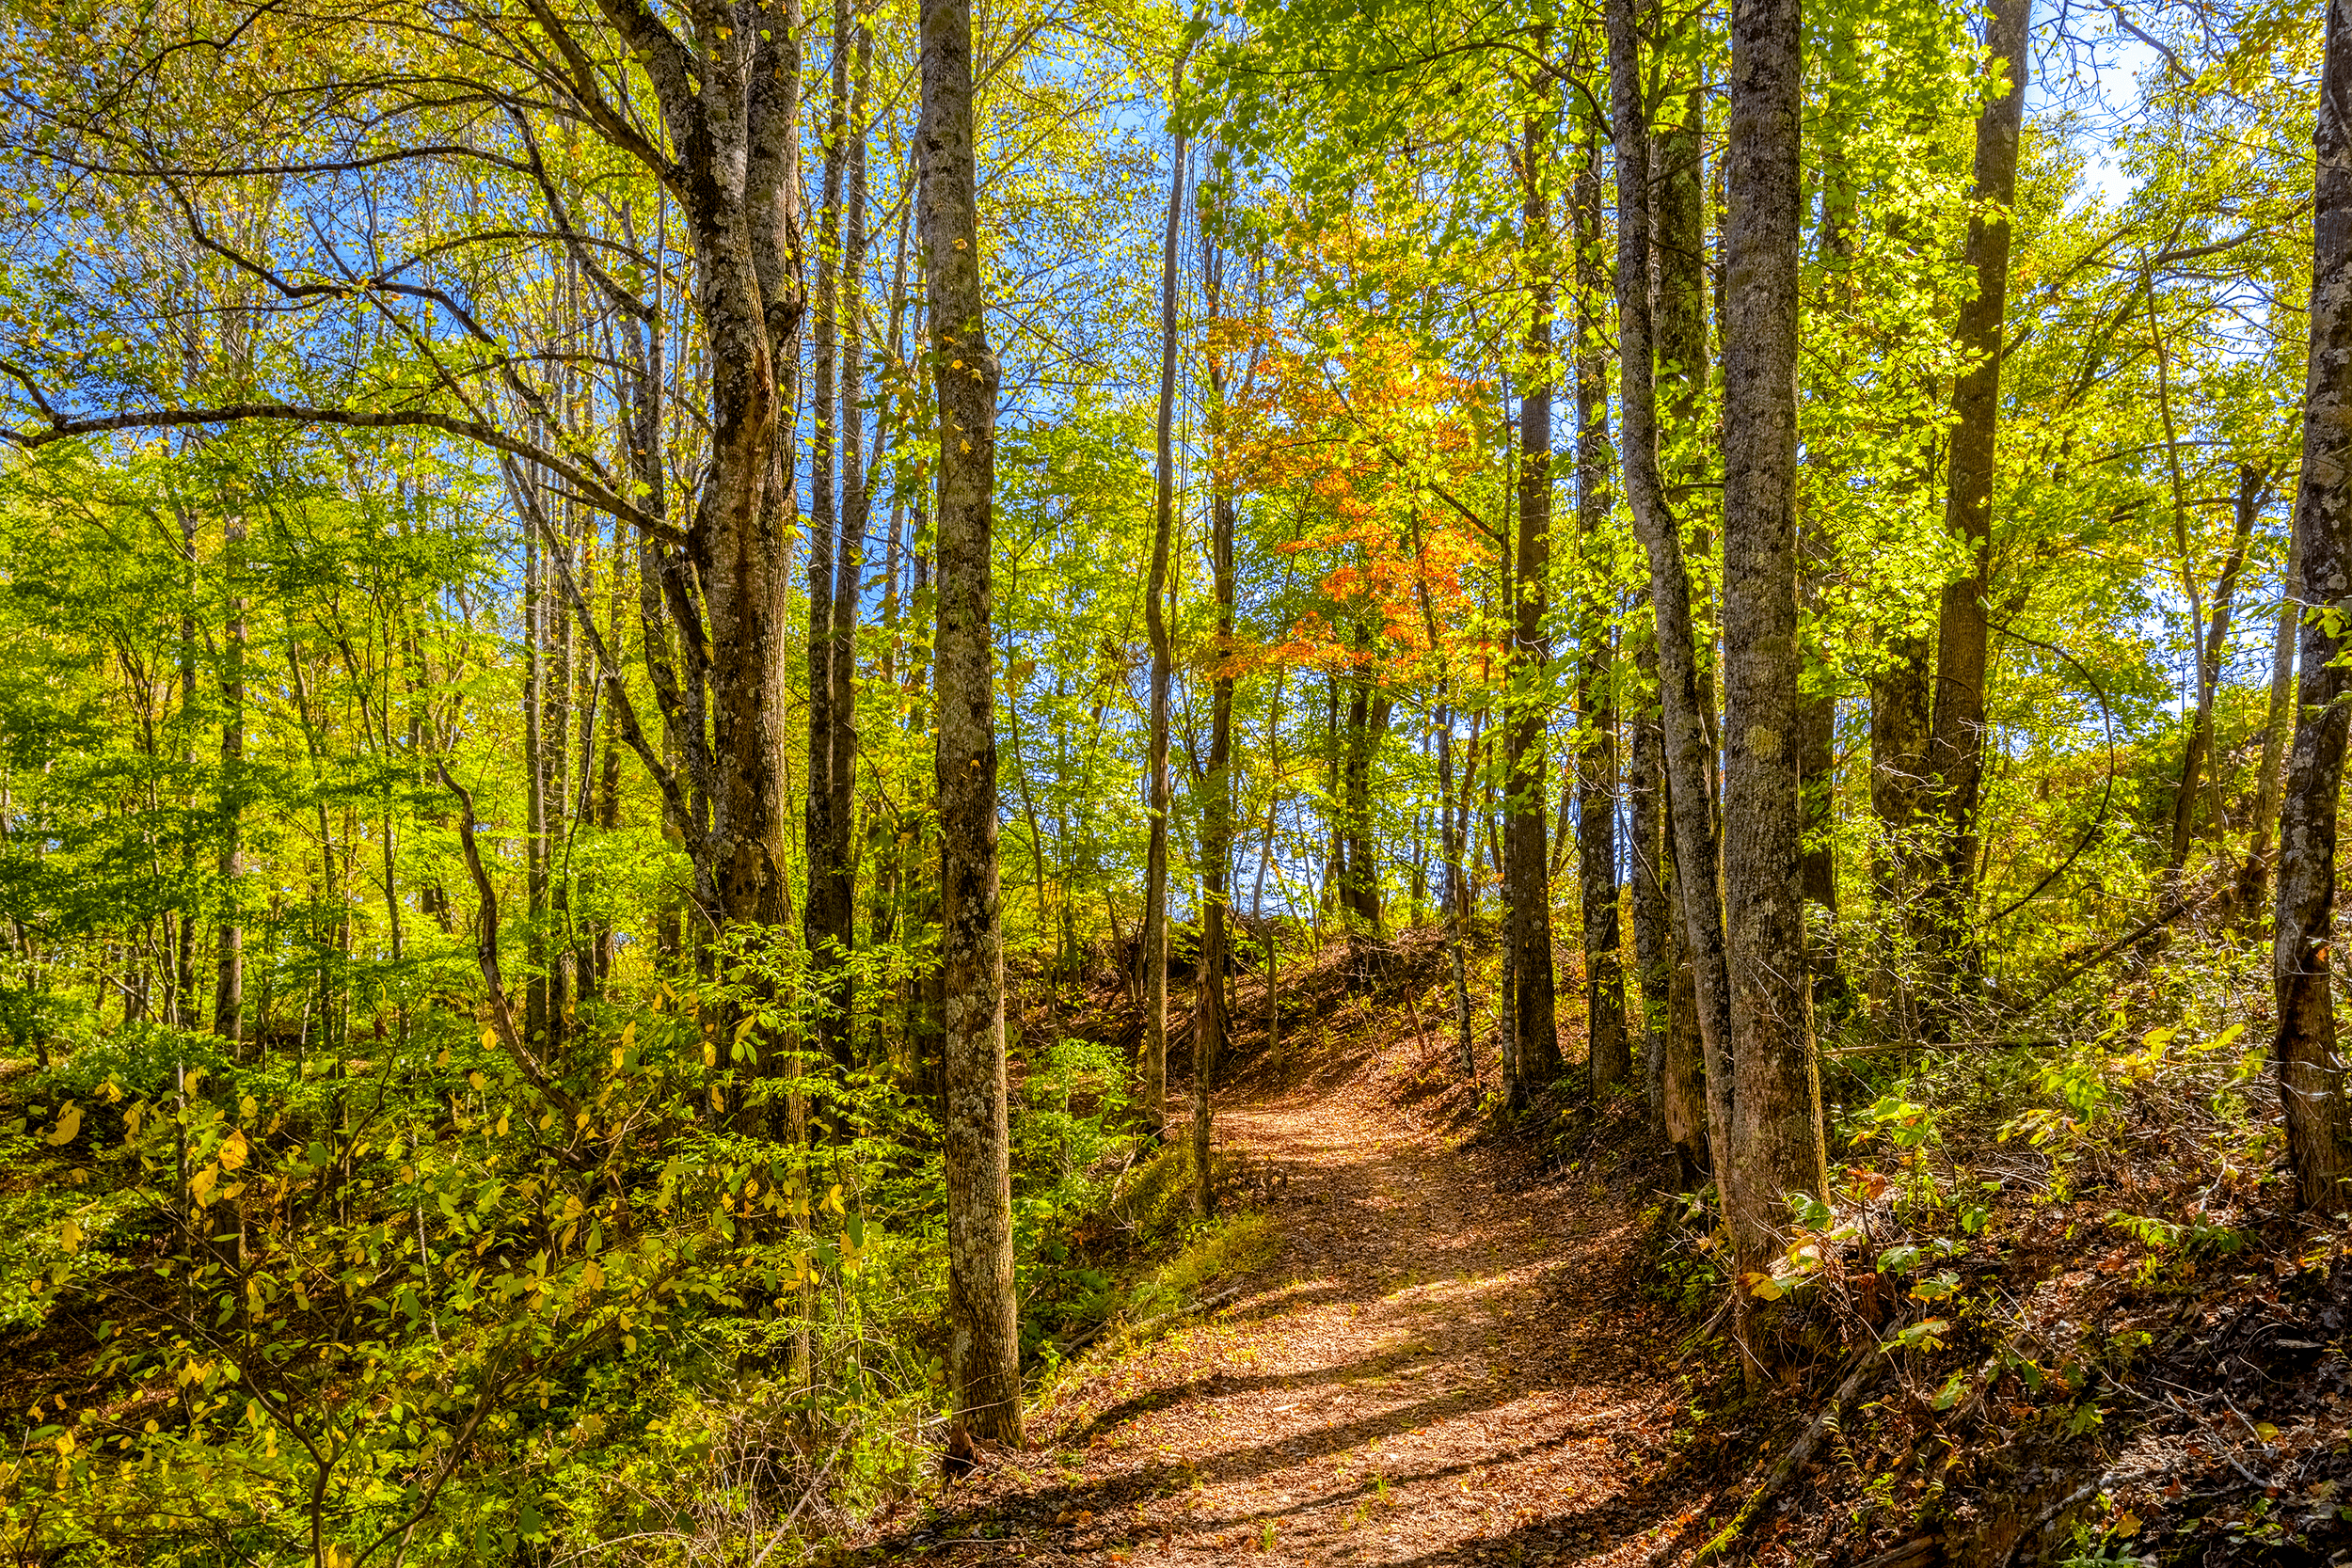 At its lowest point, the  Loop Trail  leads through a wooded area near the railway tracks.